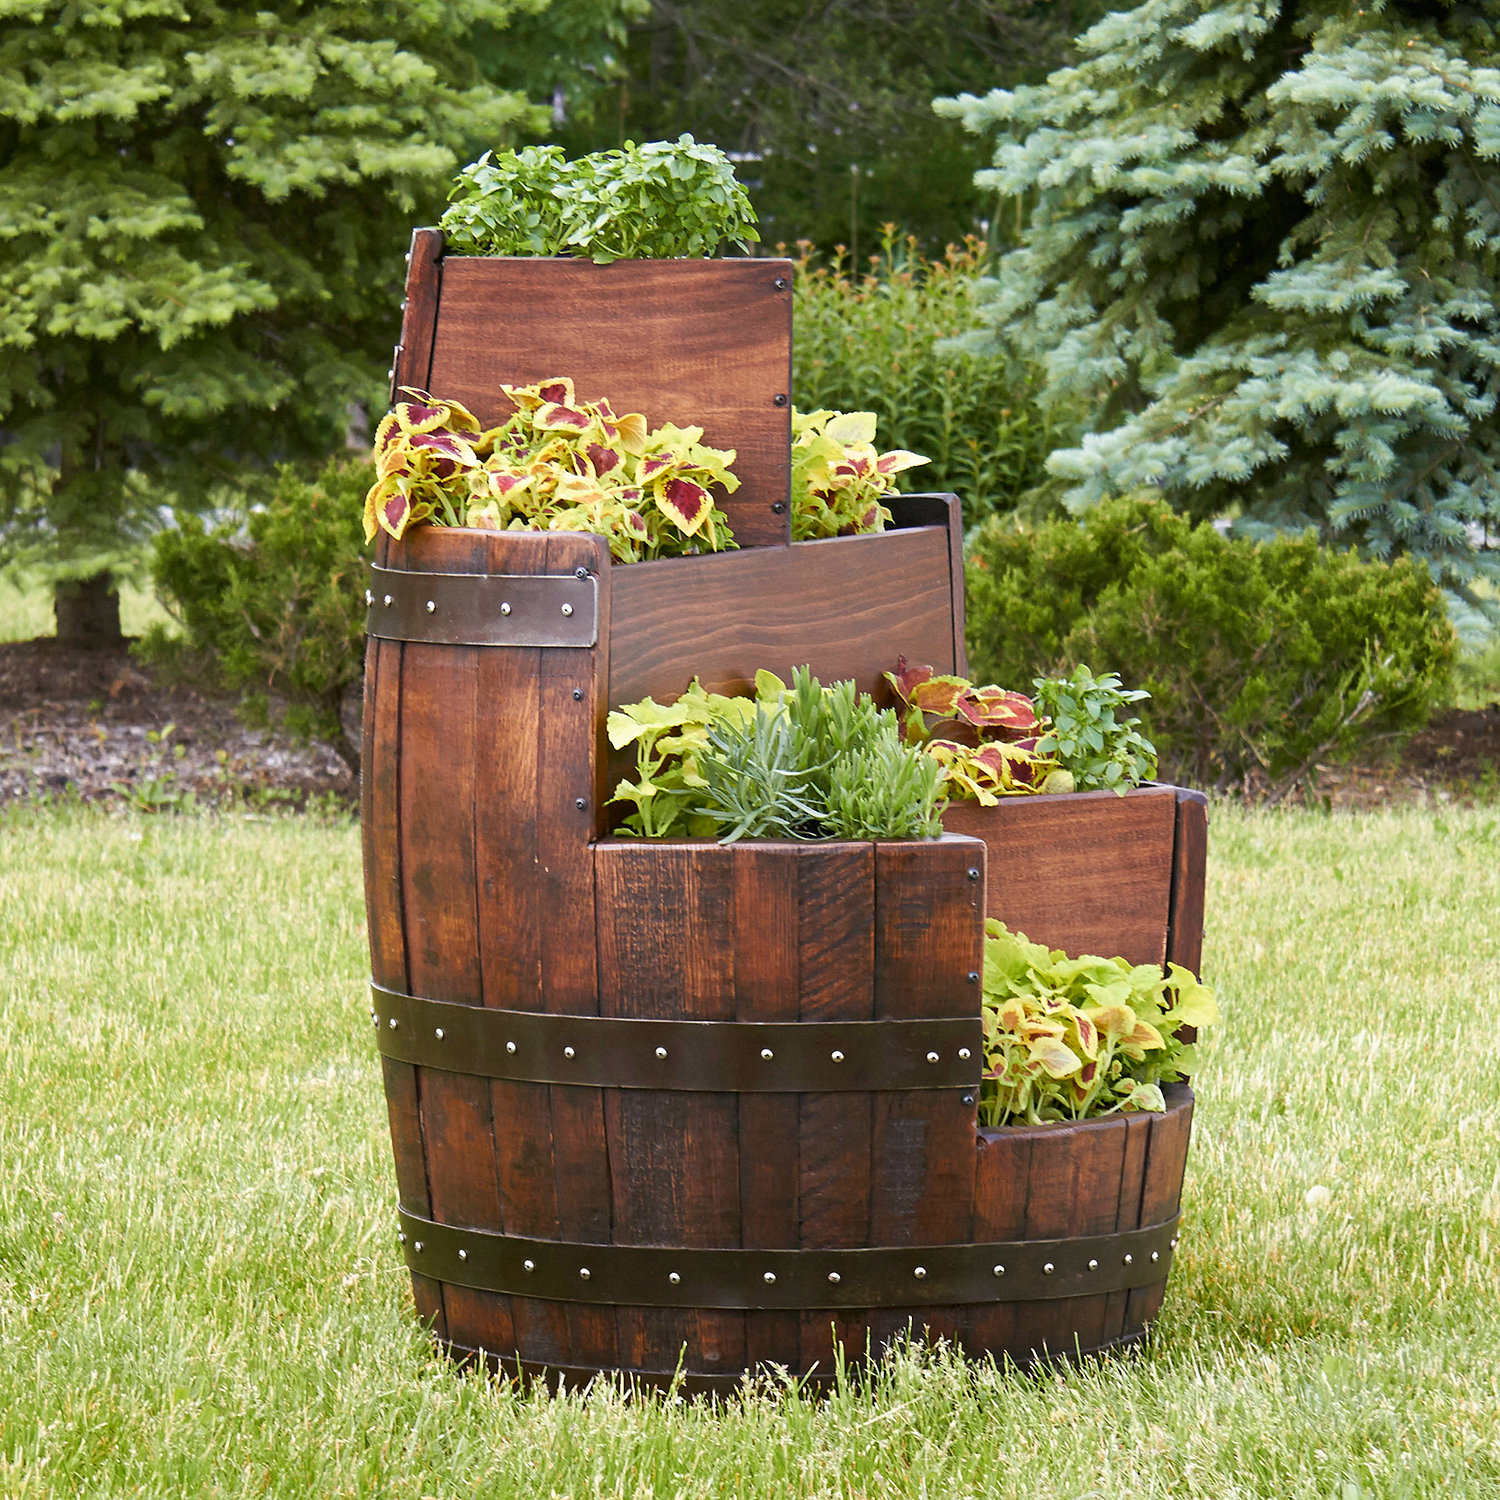 Garden Design: Garden Design with Wine Barrel Planter on Pinterest ...